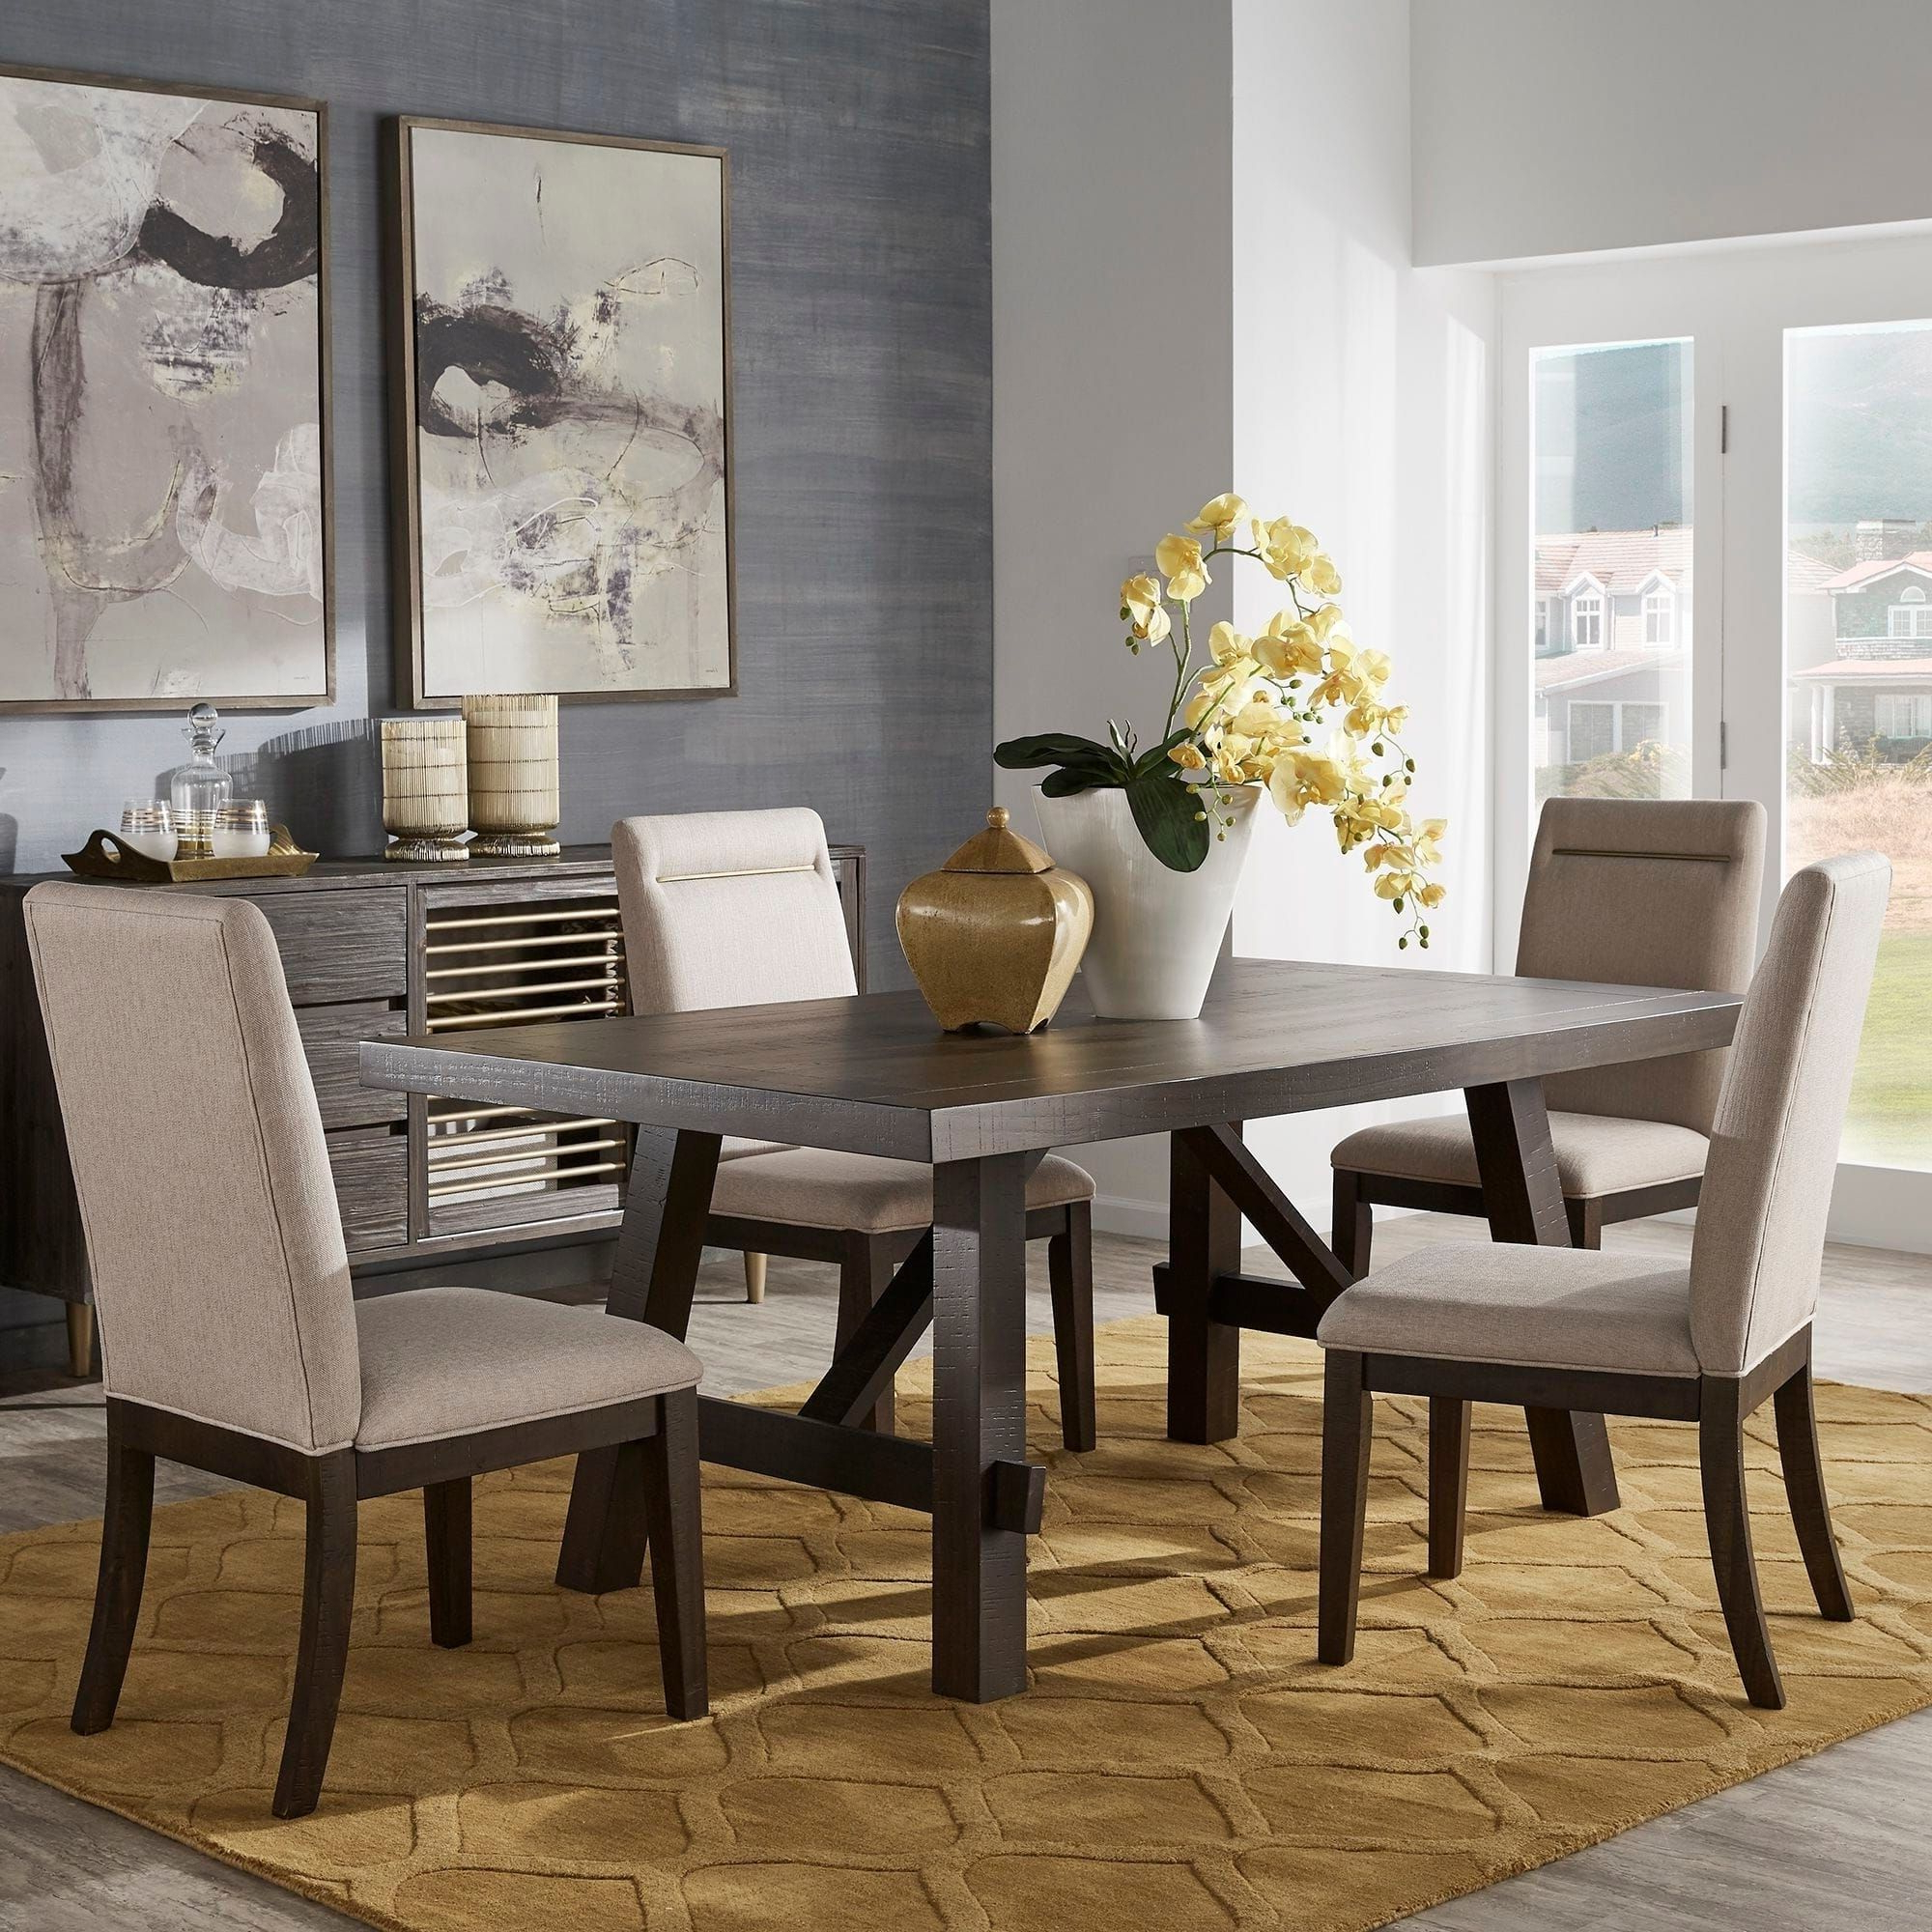 Rama Dark Espresso Finish Dining Setinspire Q Classic Within Most Up To Date Espresso Finish Wood Classic Design Dining Tables (View 5 of 17)